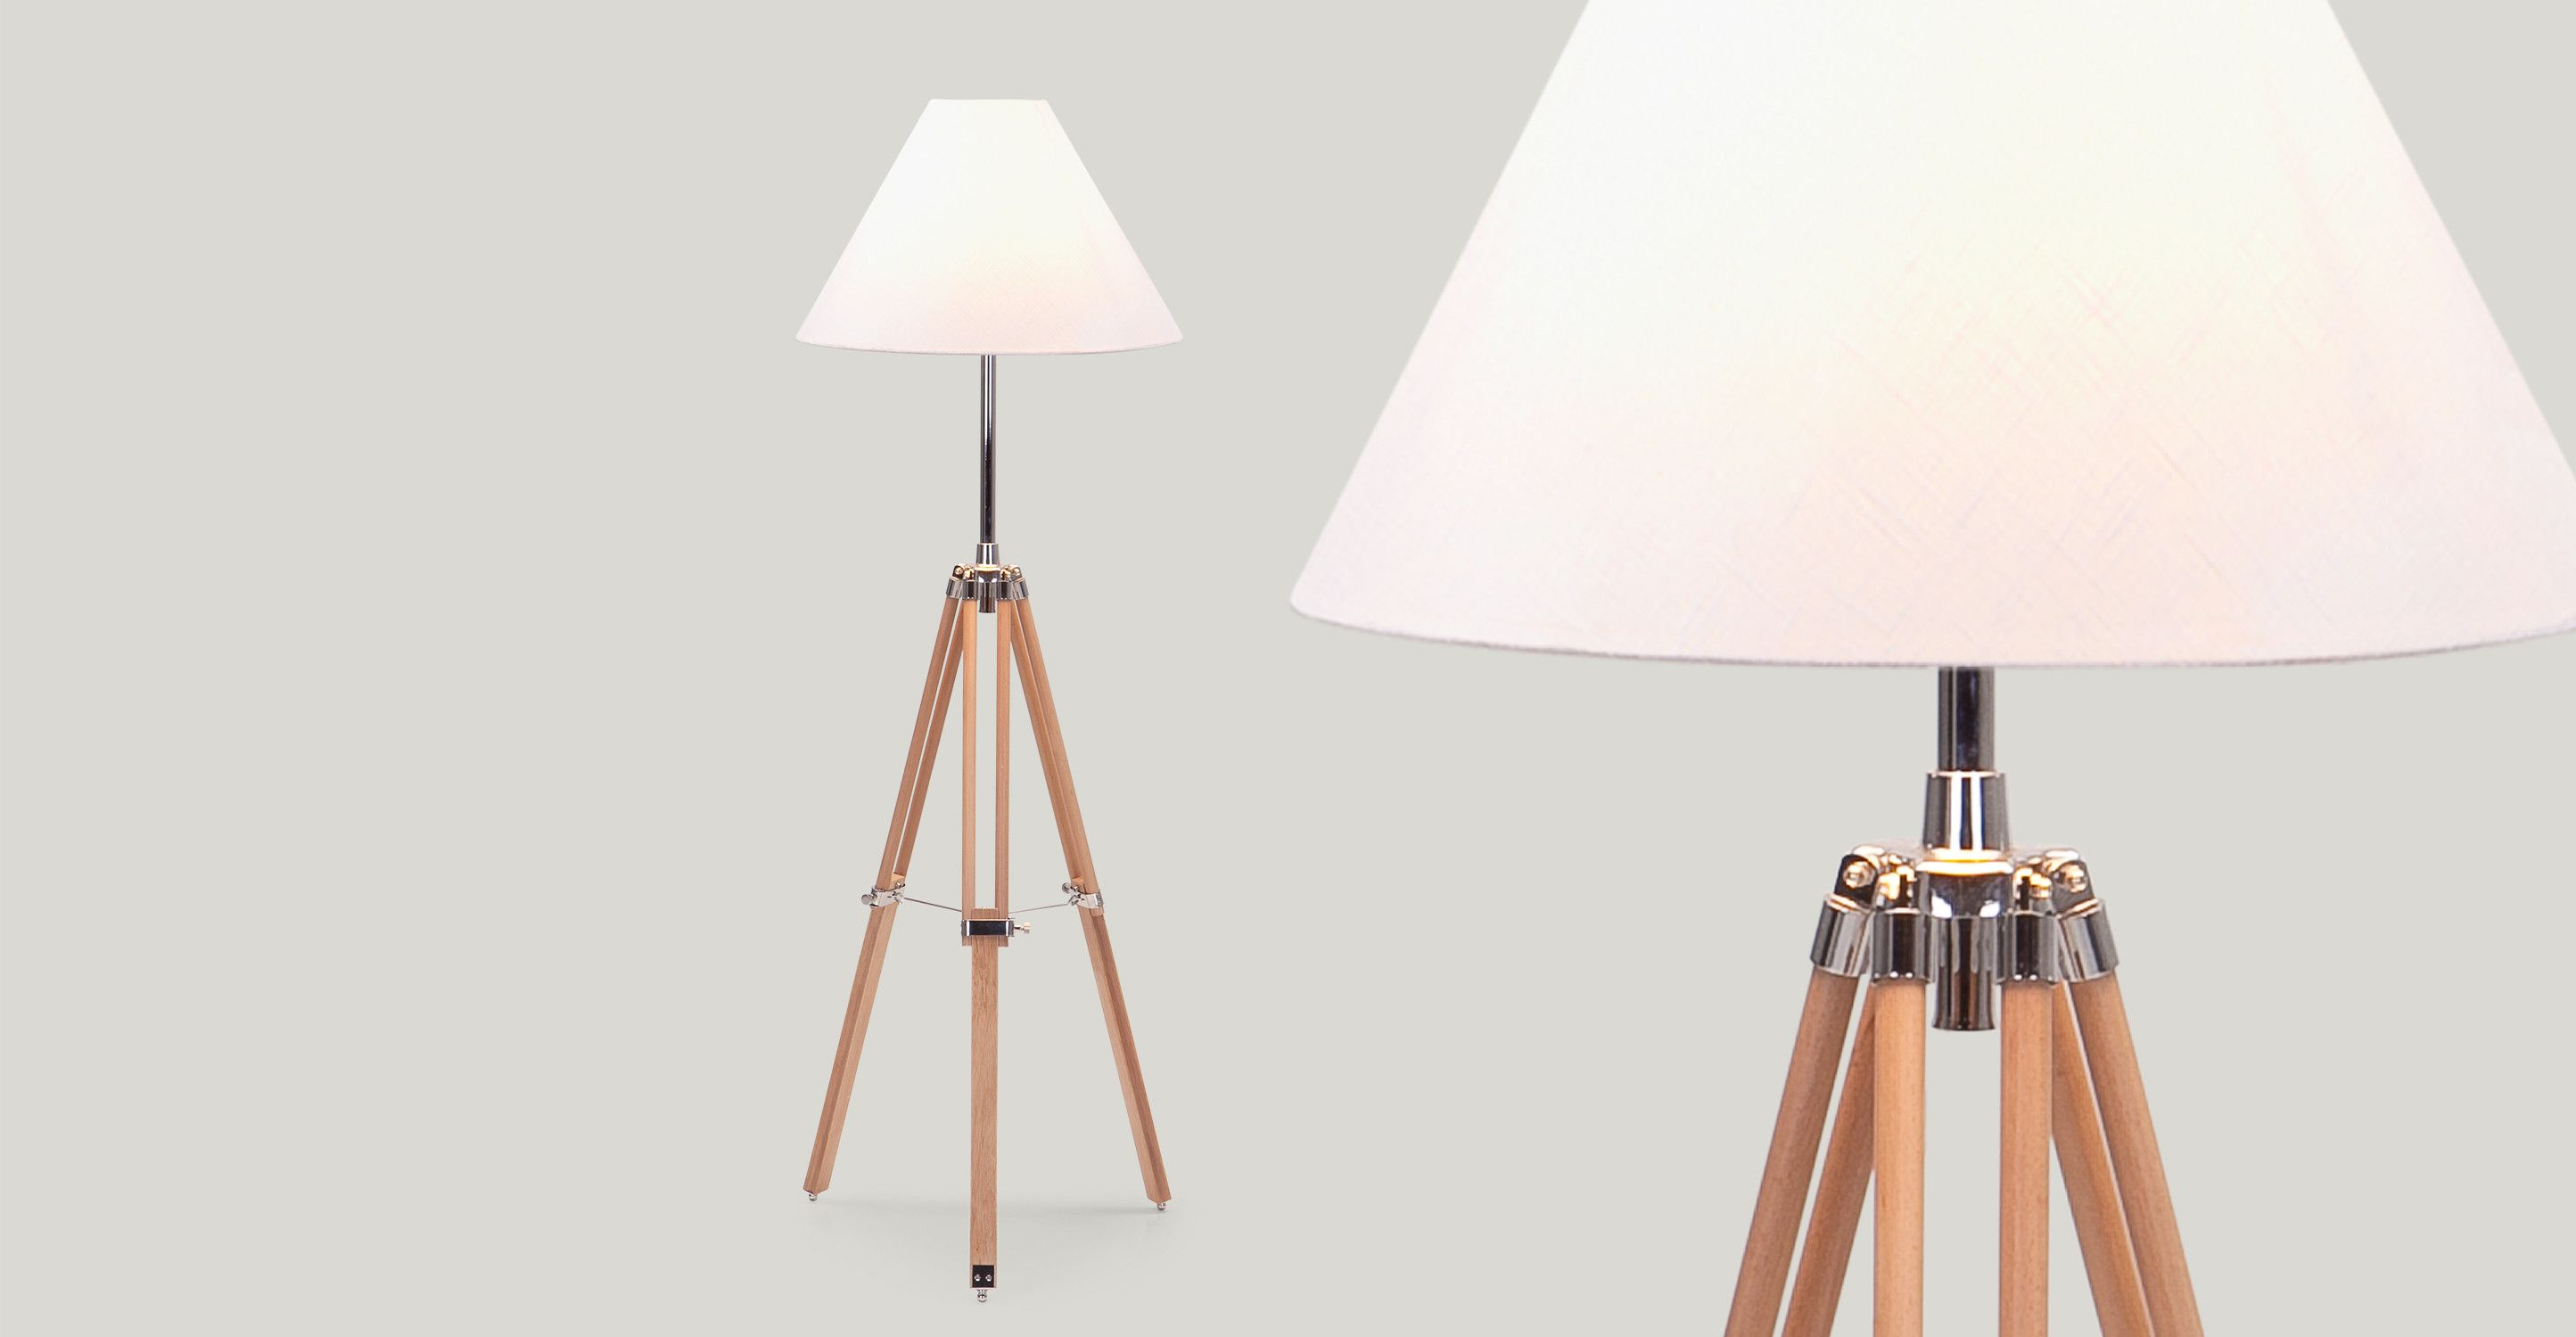 Navy Tripod Stehlampe Weiss Und Holz Sony Centre Floor Lamp